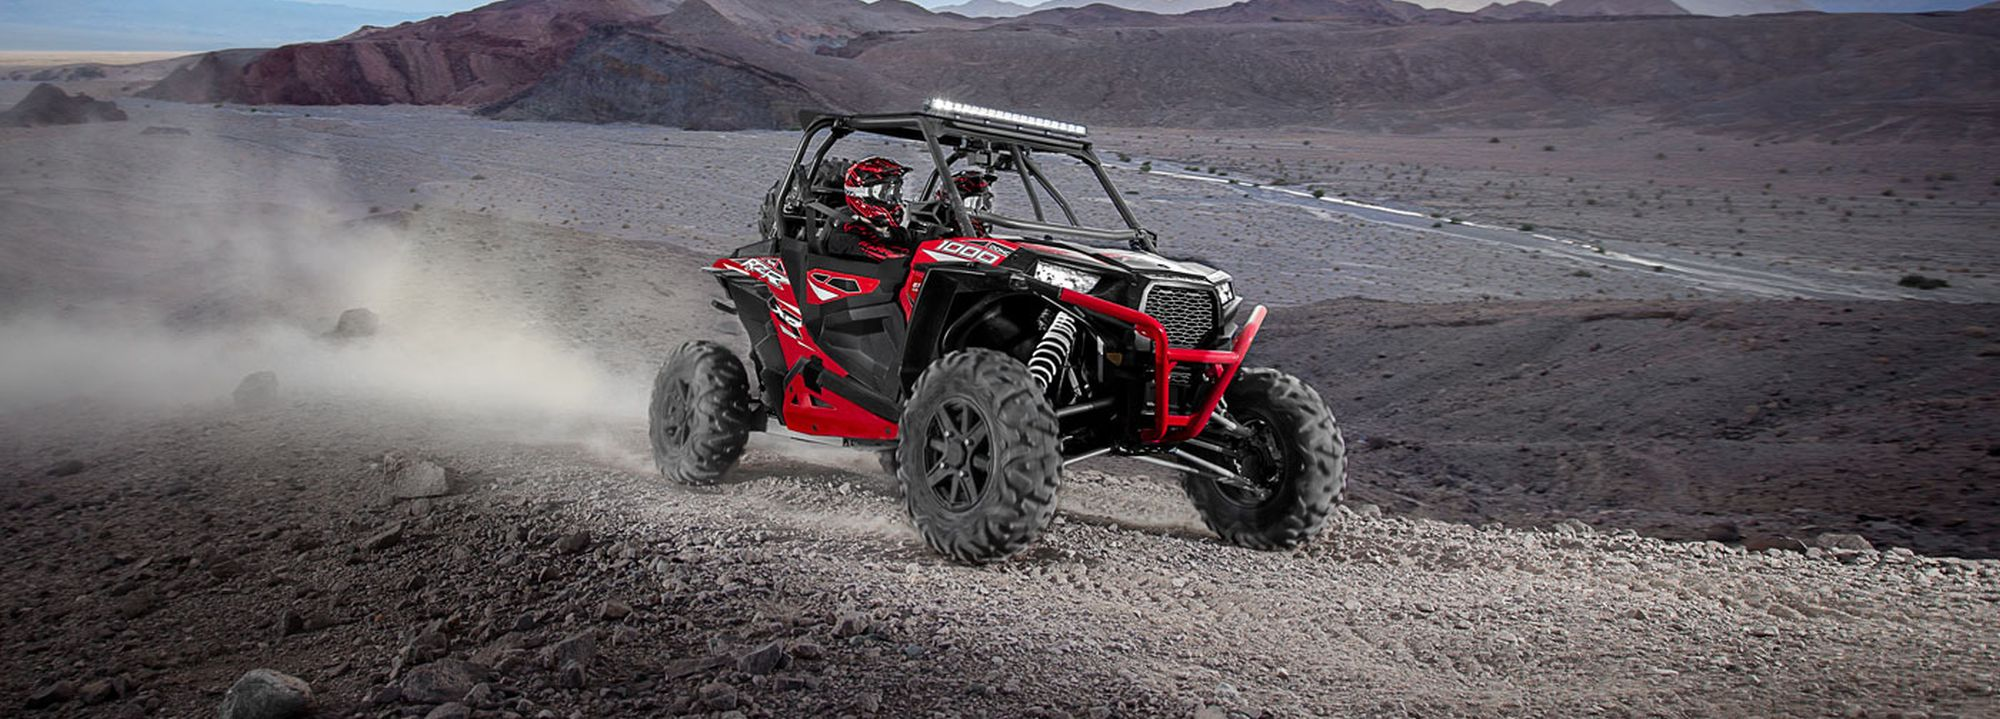 gebrauchte polaris rzr 1000 motorr der kaufen. Black Bedroom Furniture Sets. Home Design Ideas